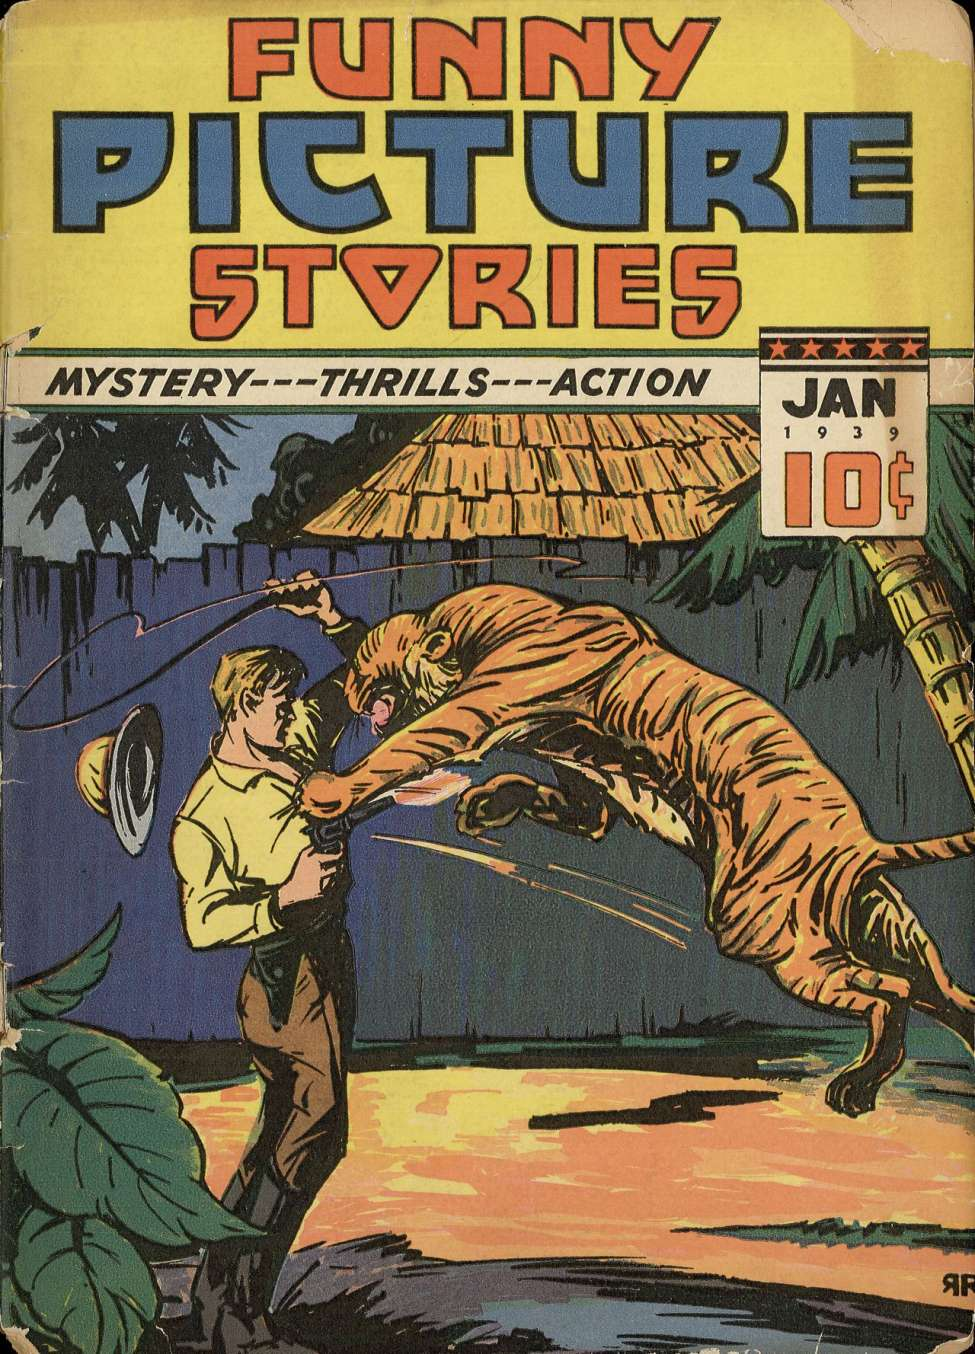 Comic Book Cover For Funny Picture Stories v3 #1